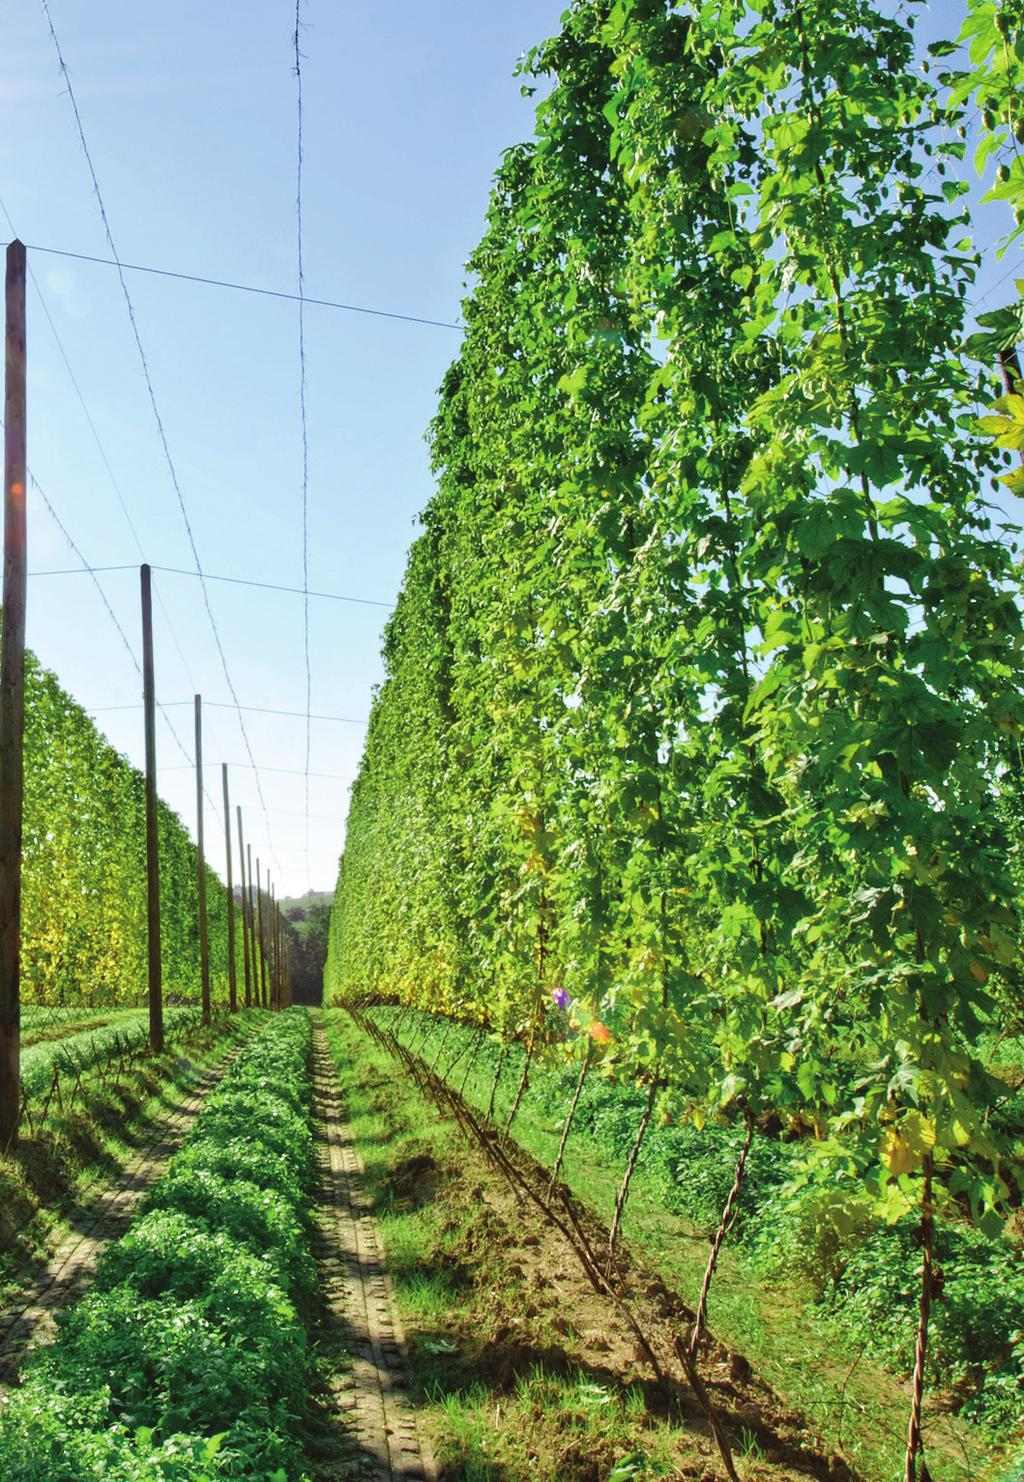 Introducing the hop Humulus Lupulus One of the 4 key raw materials used in beer, hops provide the brewer with many functional benefits; bitterness, aroma, flavour, mouth feel, foam stability and